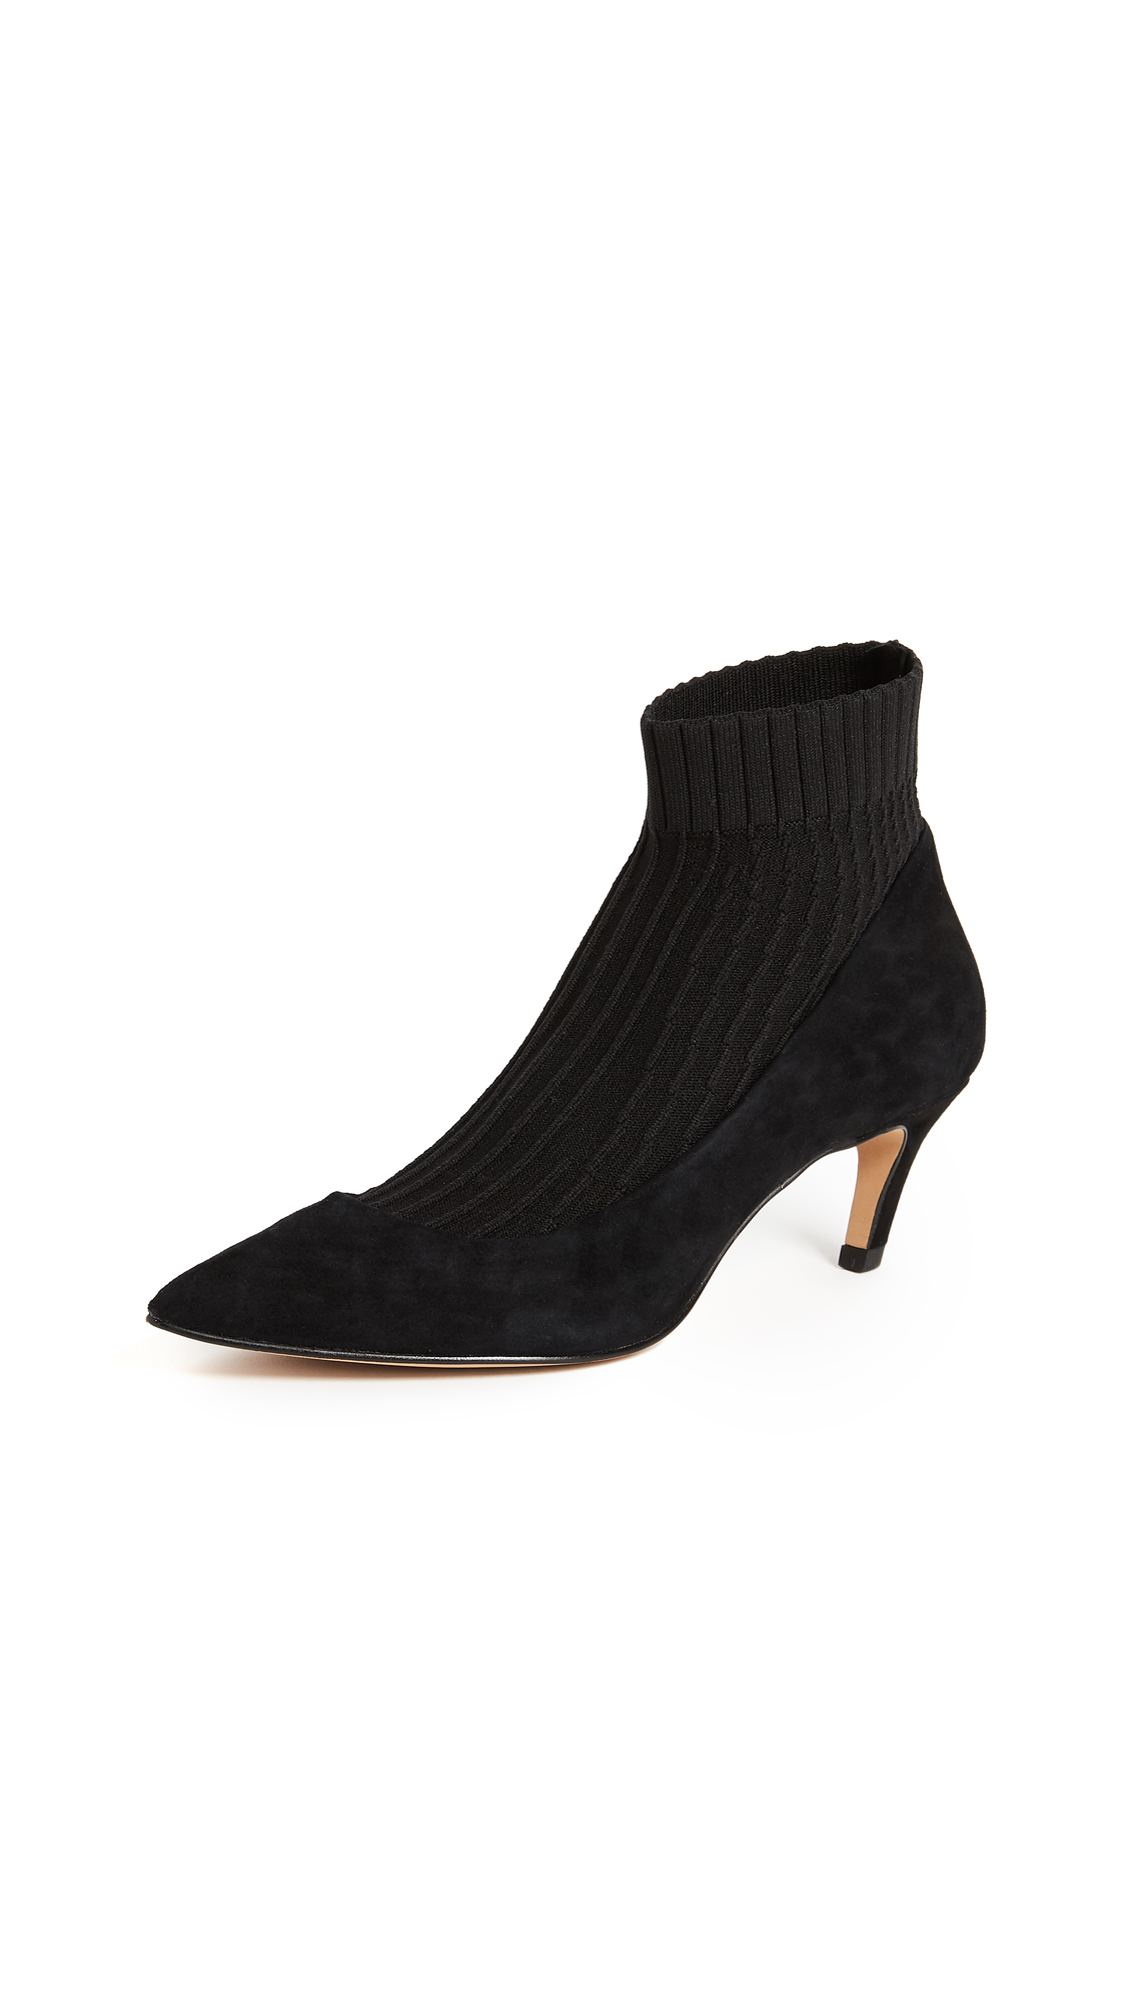 Dolce Vita Nyke Booties - Black